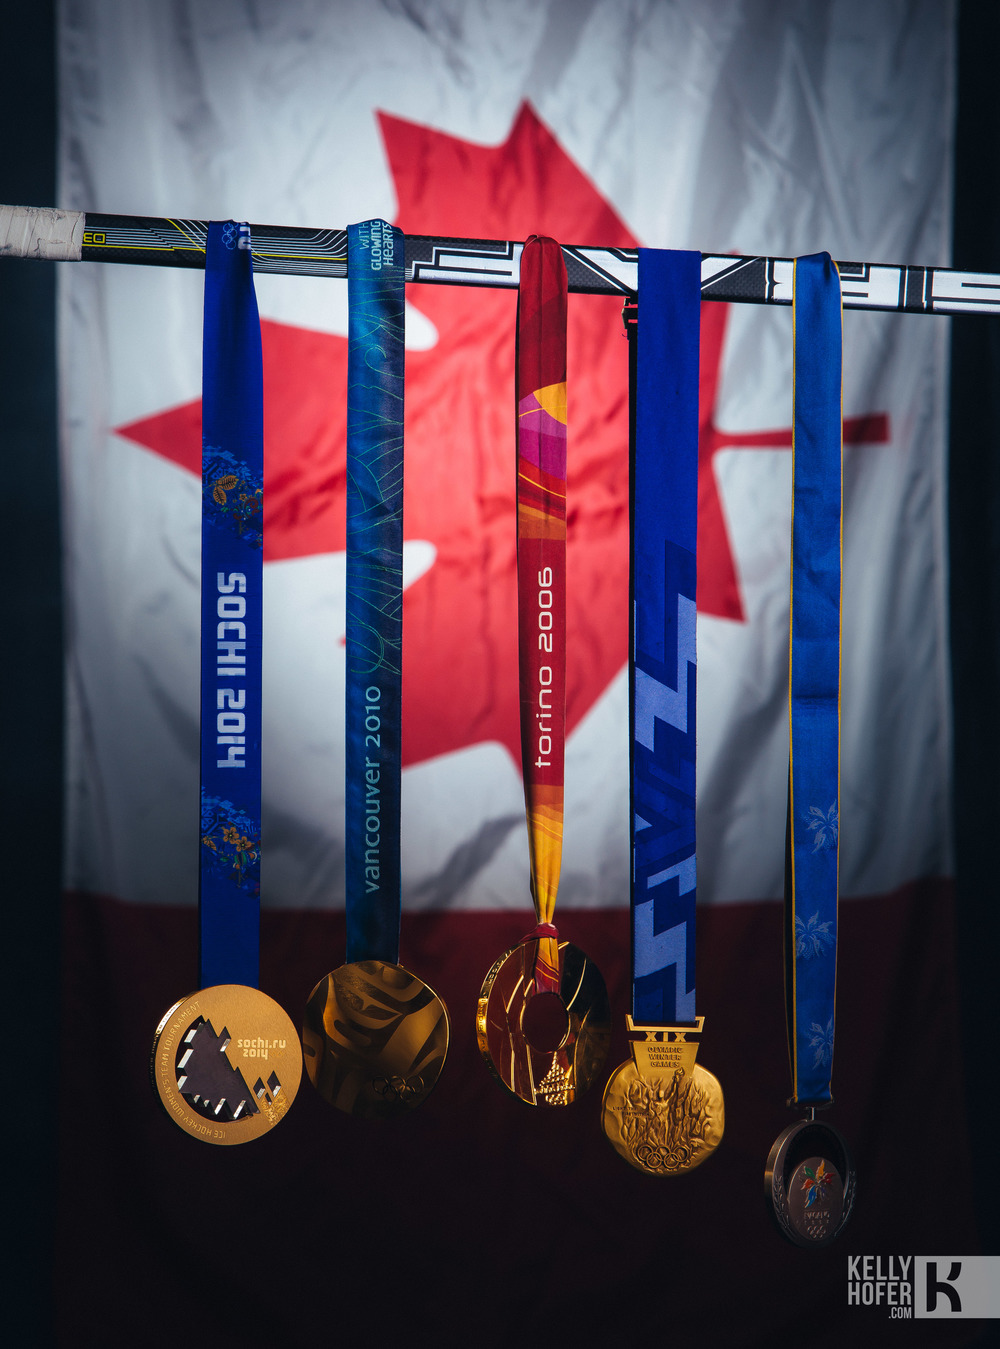 The gold Medals of Jayna Hefford: Image copyright: Hockeycanada.ca